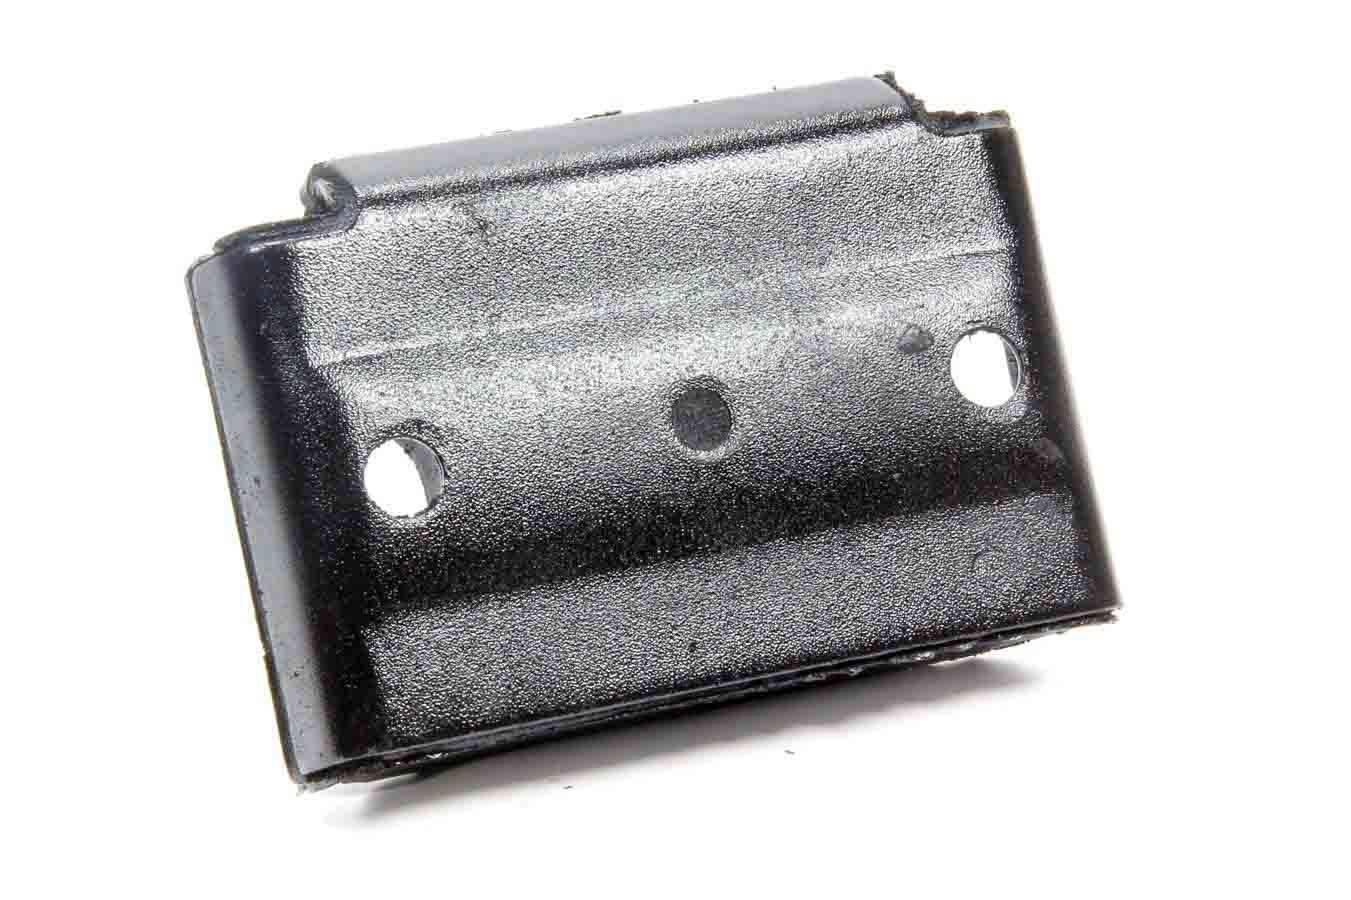 Pioneer 602290 Motor Mount, Bolt-On, Rubber / Steel, Black Paint, Various Applications, Each